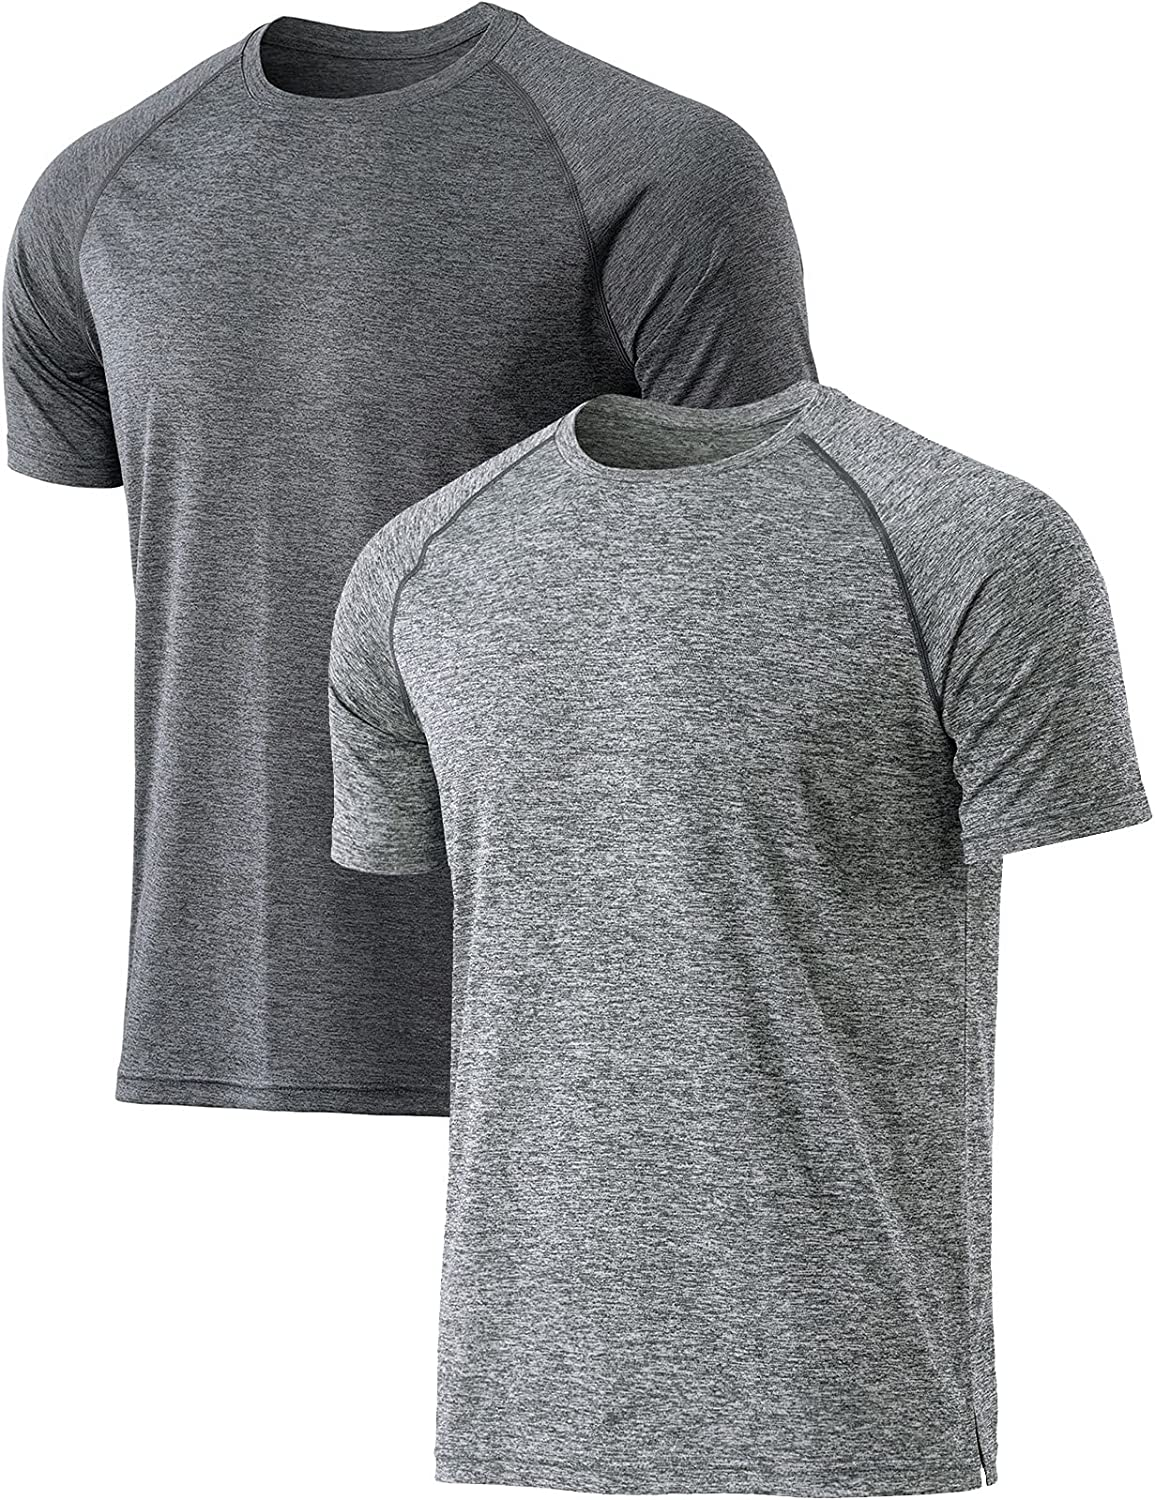 TSLA Popular popular 1 or 2 High quality Pack Men's Moisture Workout Shirts Dry Running Fit